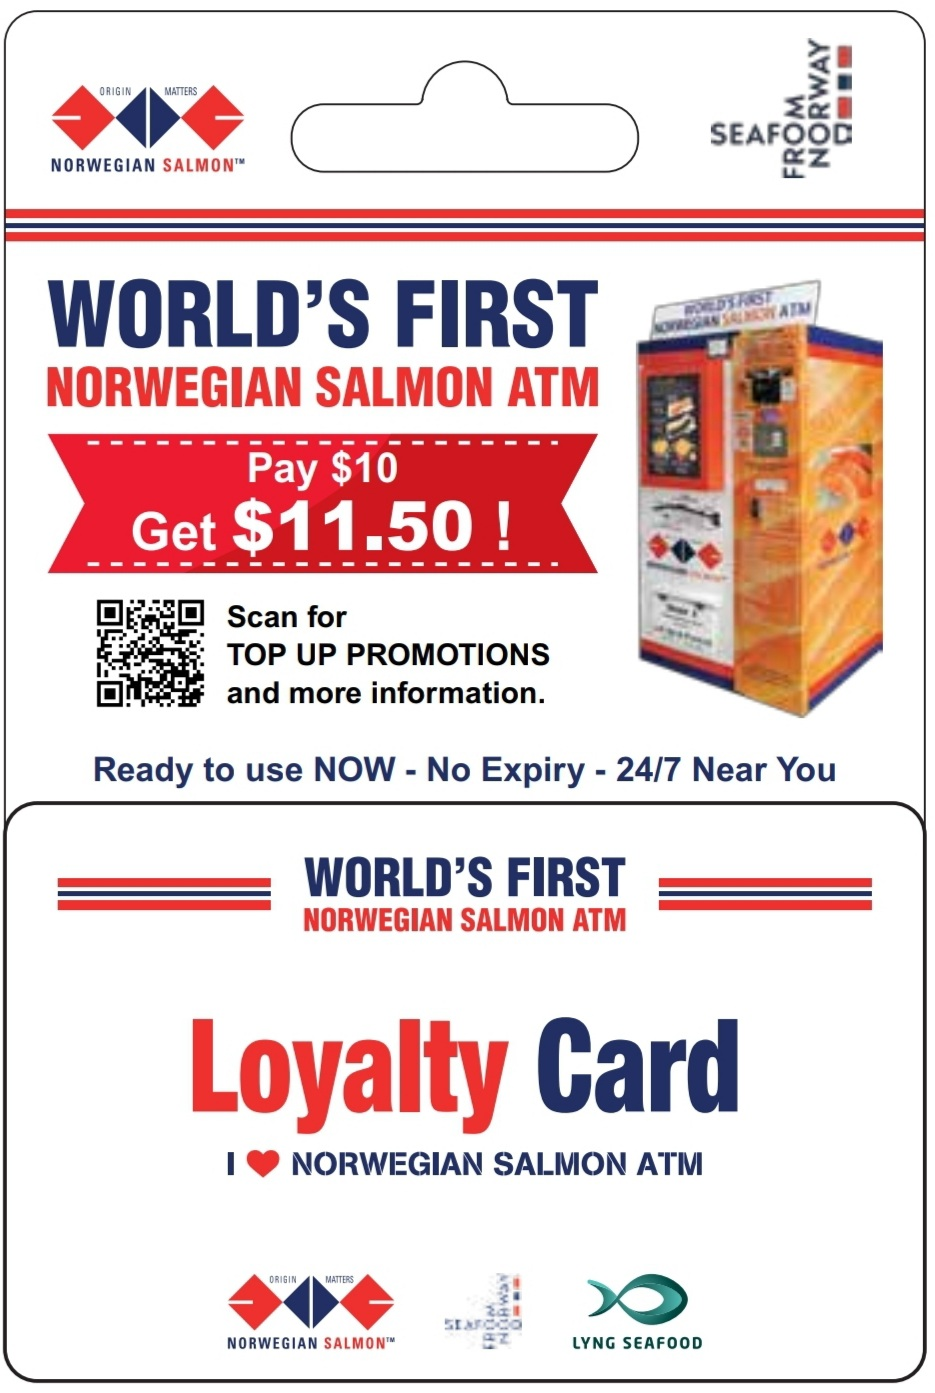 Salmon ATM Prepaid Physical Card (includes $11.50 credit)